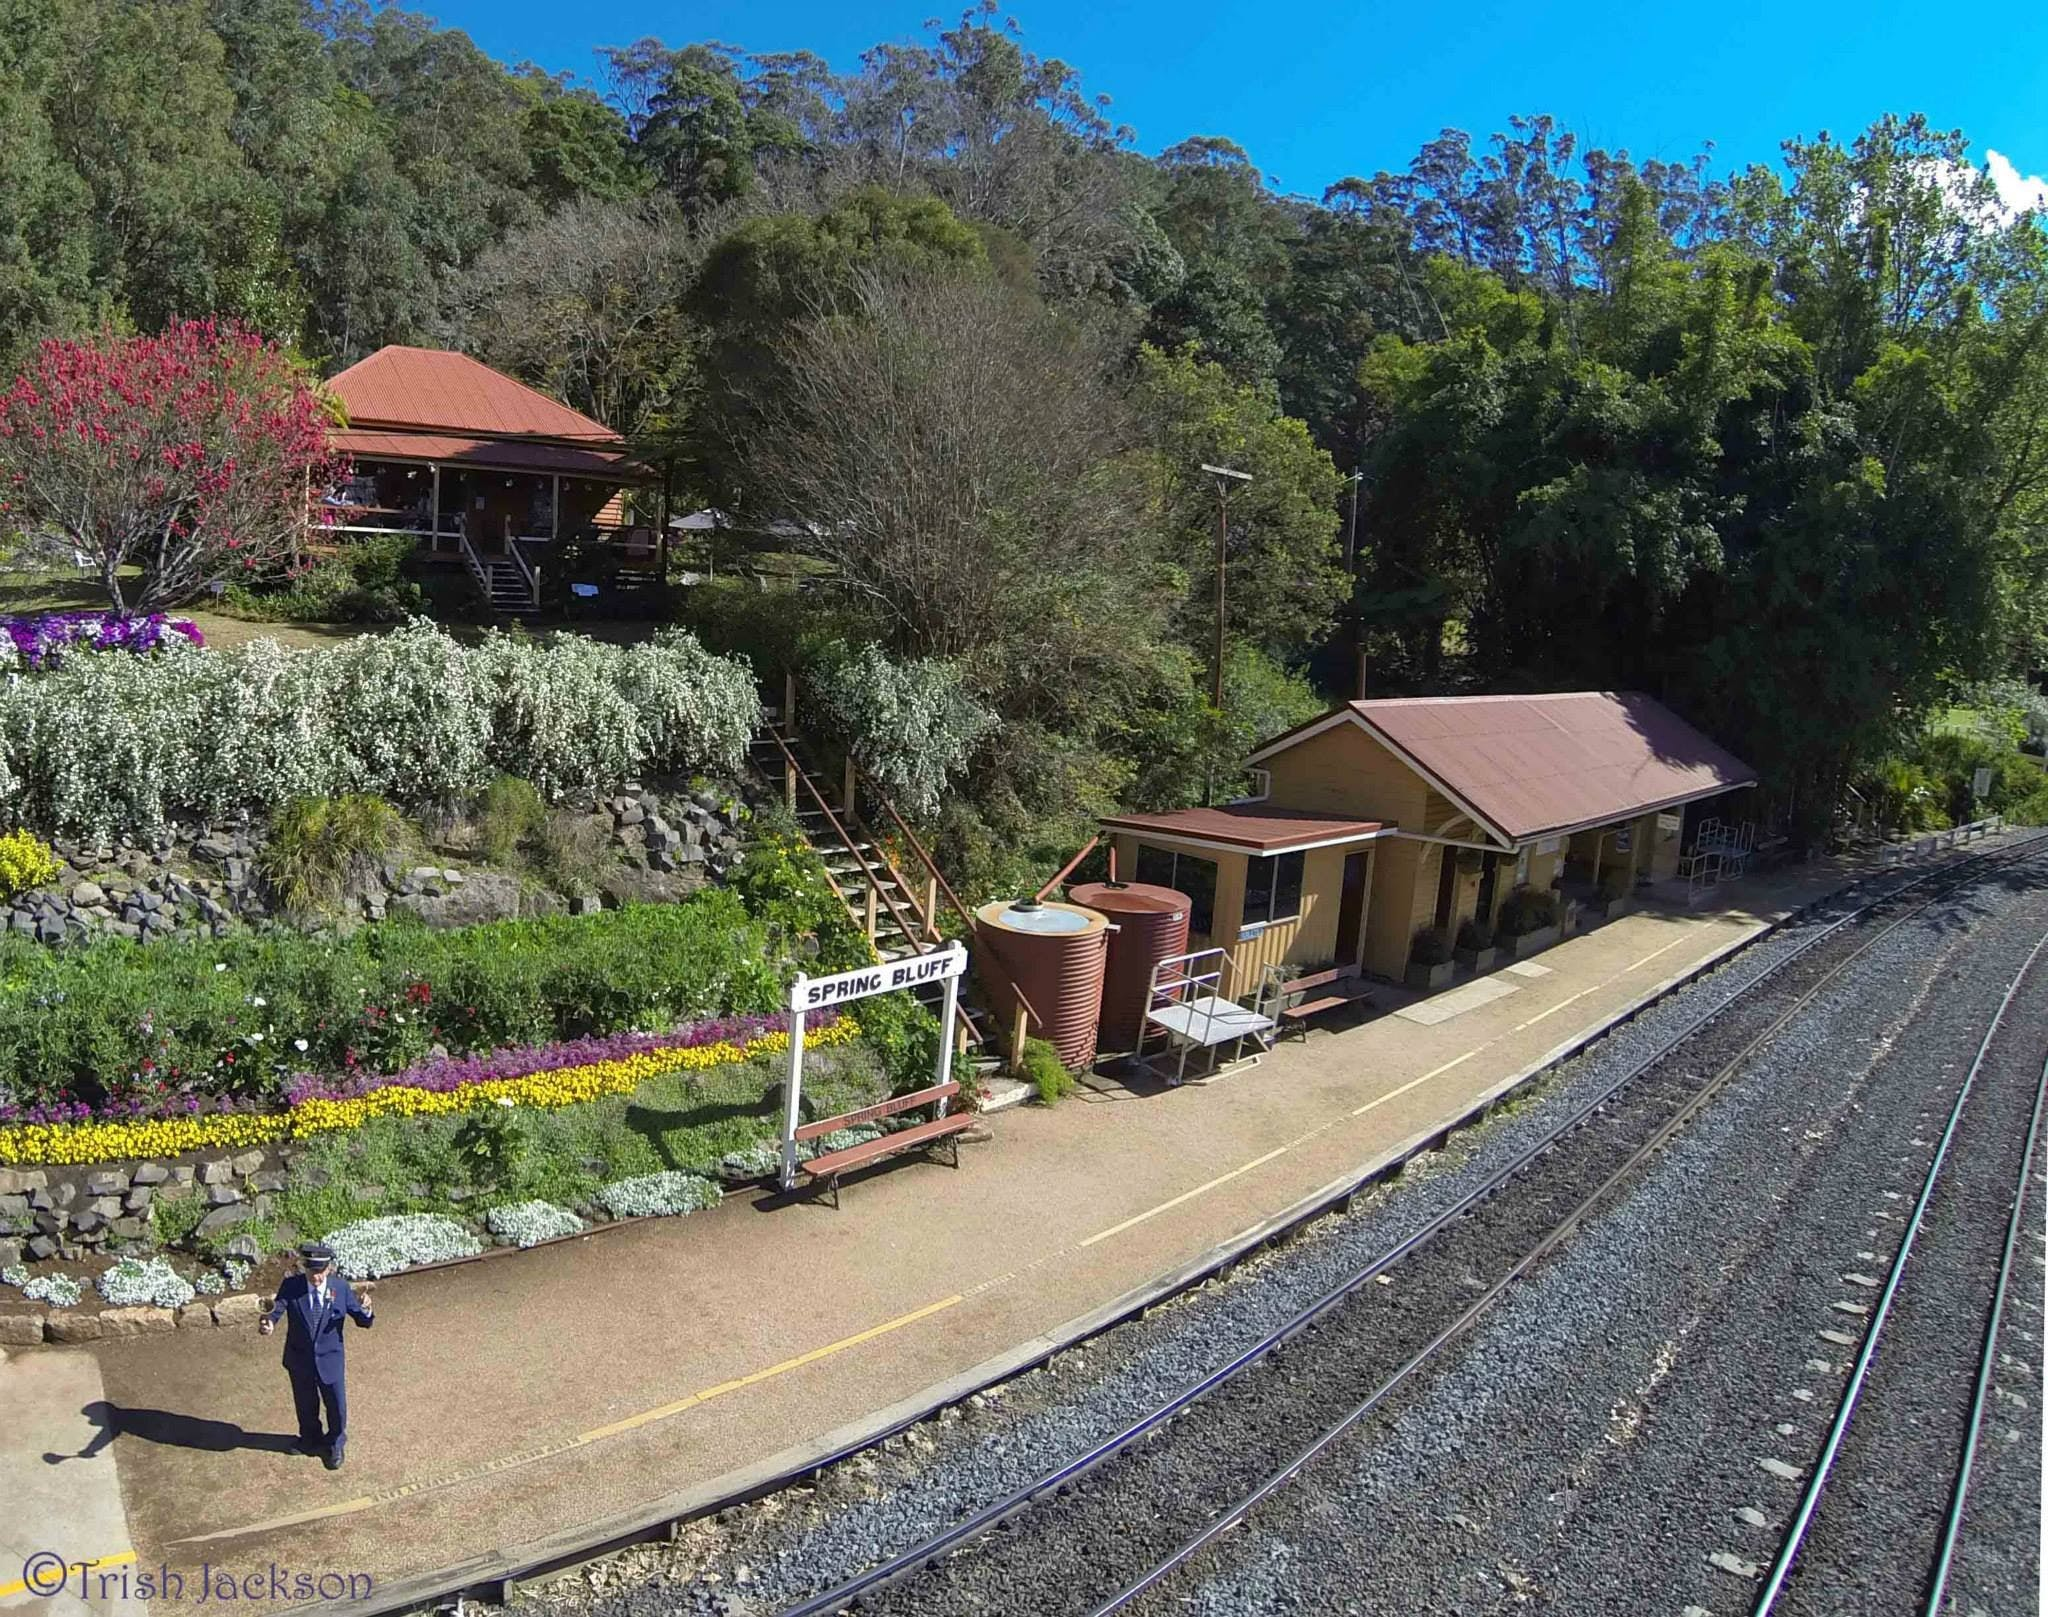 Spring Bluff Railway Station - Accommodation Melbourne